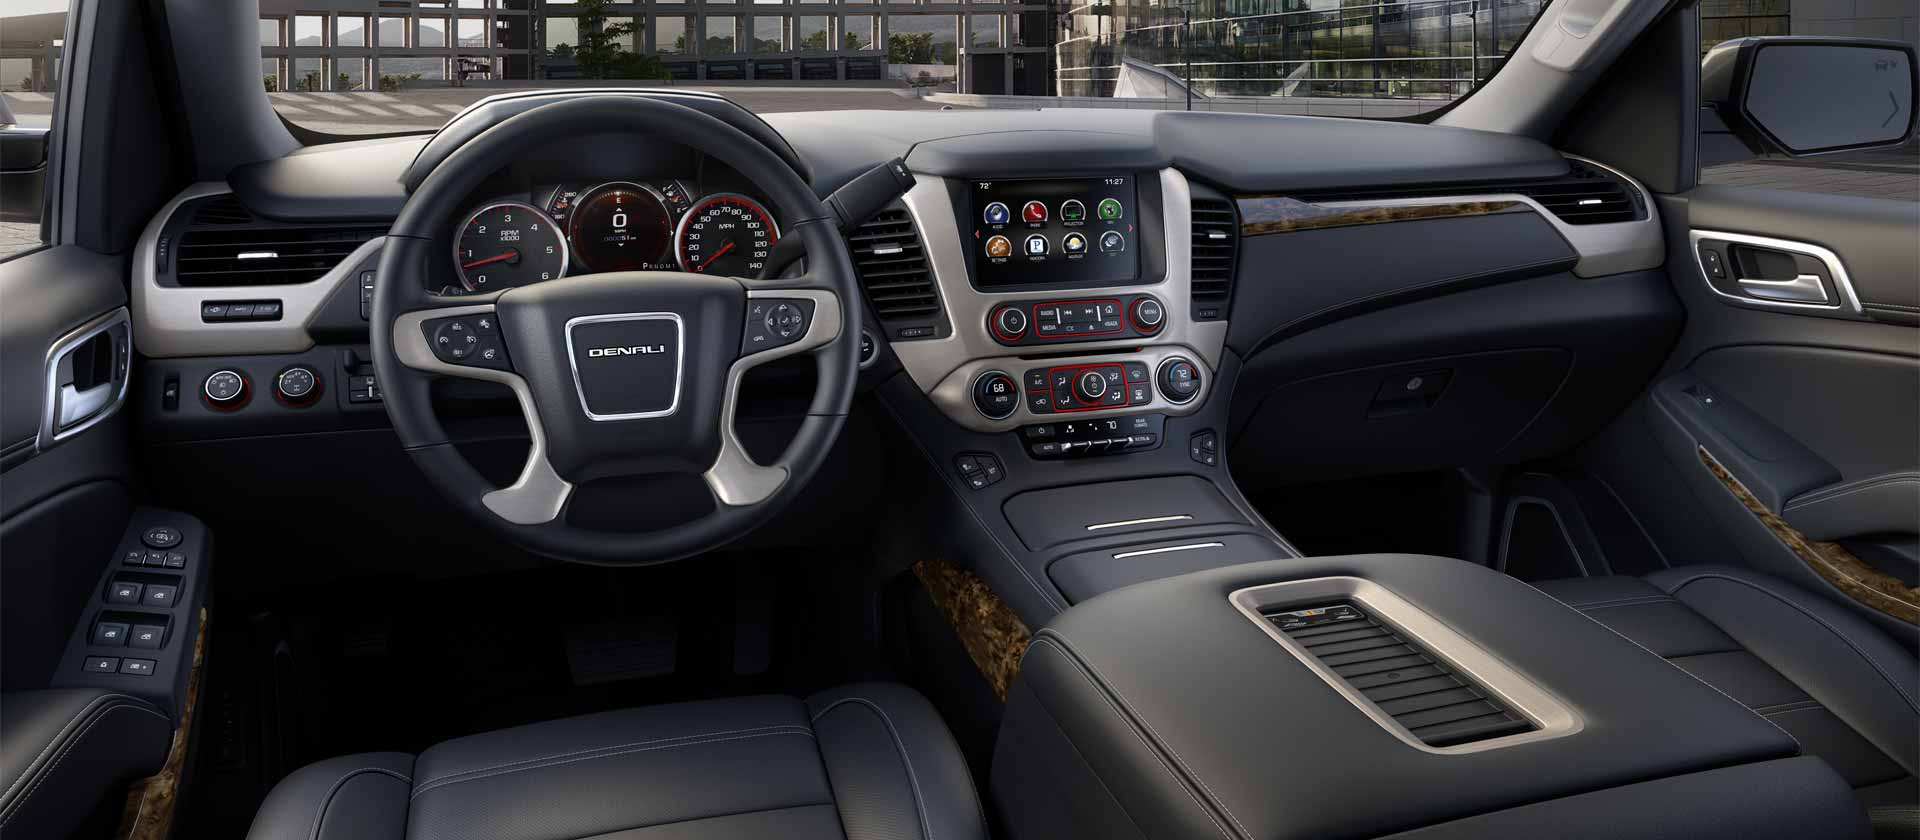 2017 Gmc Yukon Series A Top Rated Family Vehicle